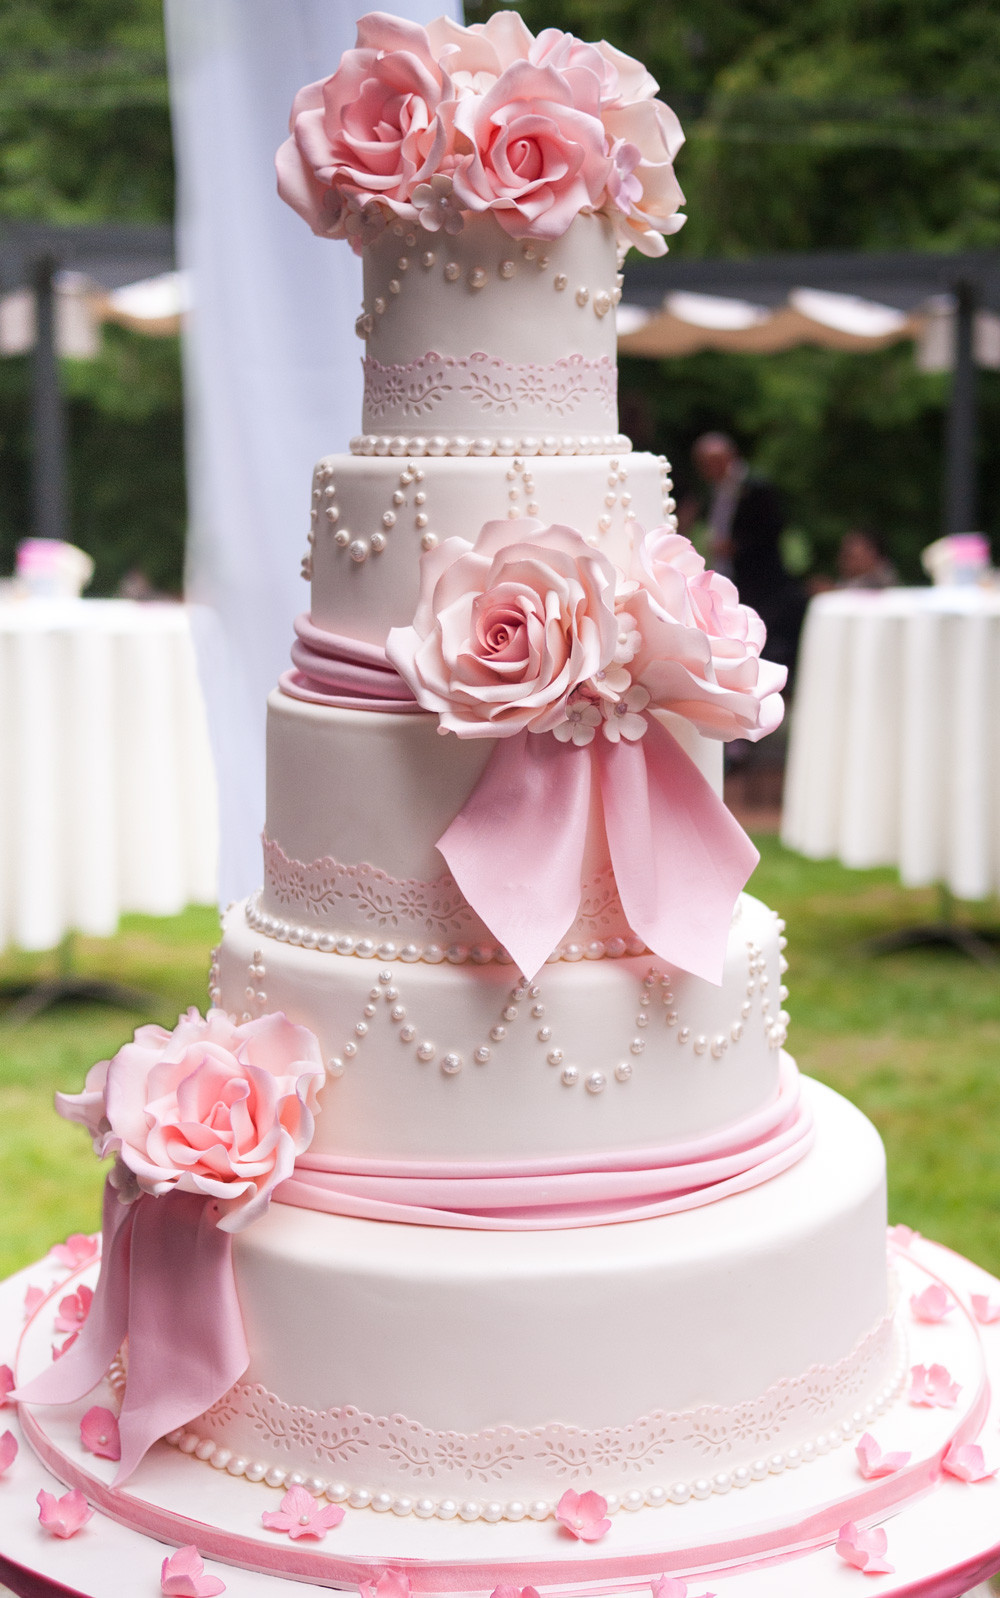 Prettiest Wedding Cakes  18 Wedding Cakes That Prove Love Is The Best Ingre nt